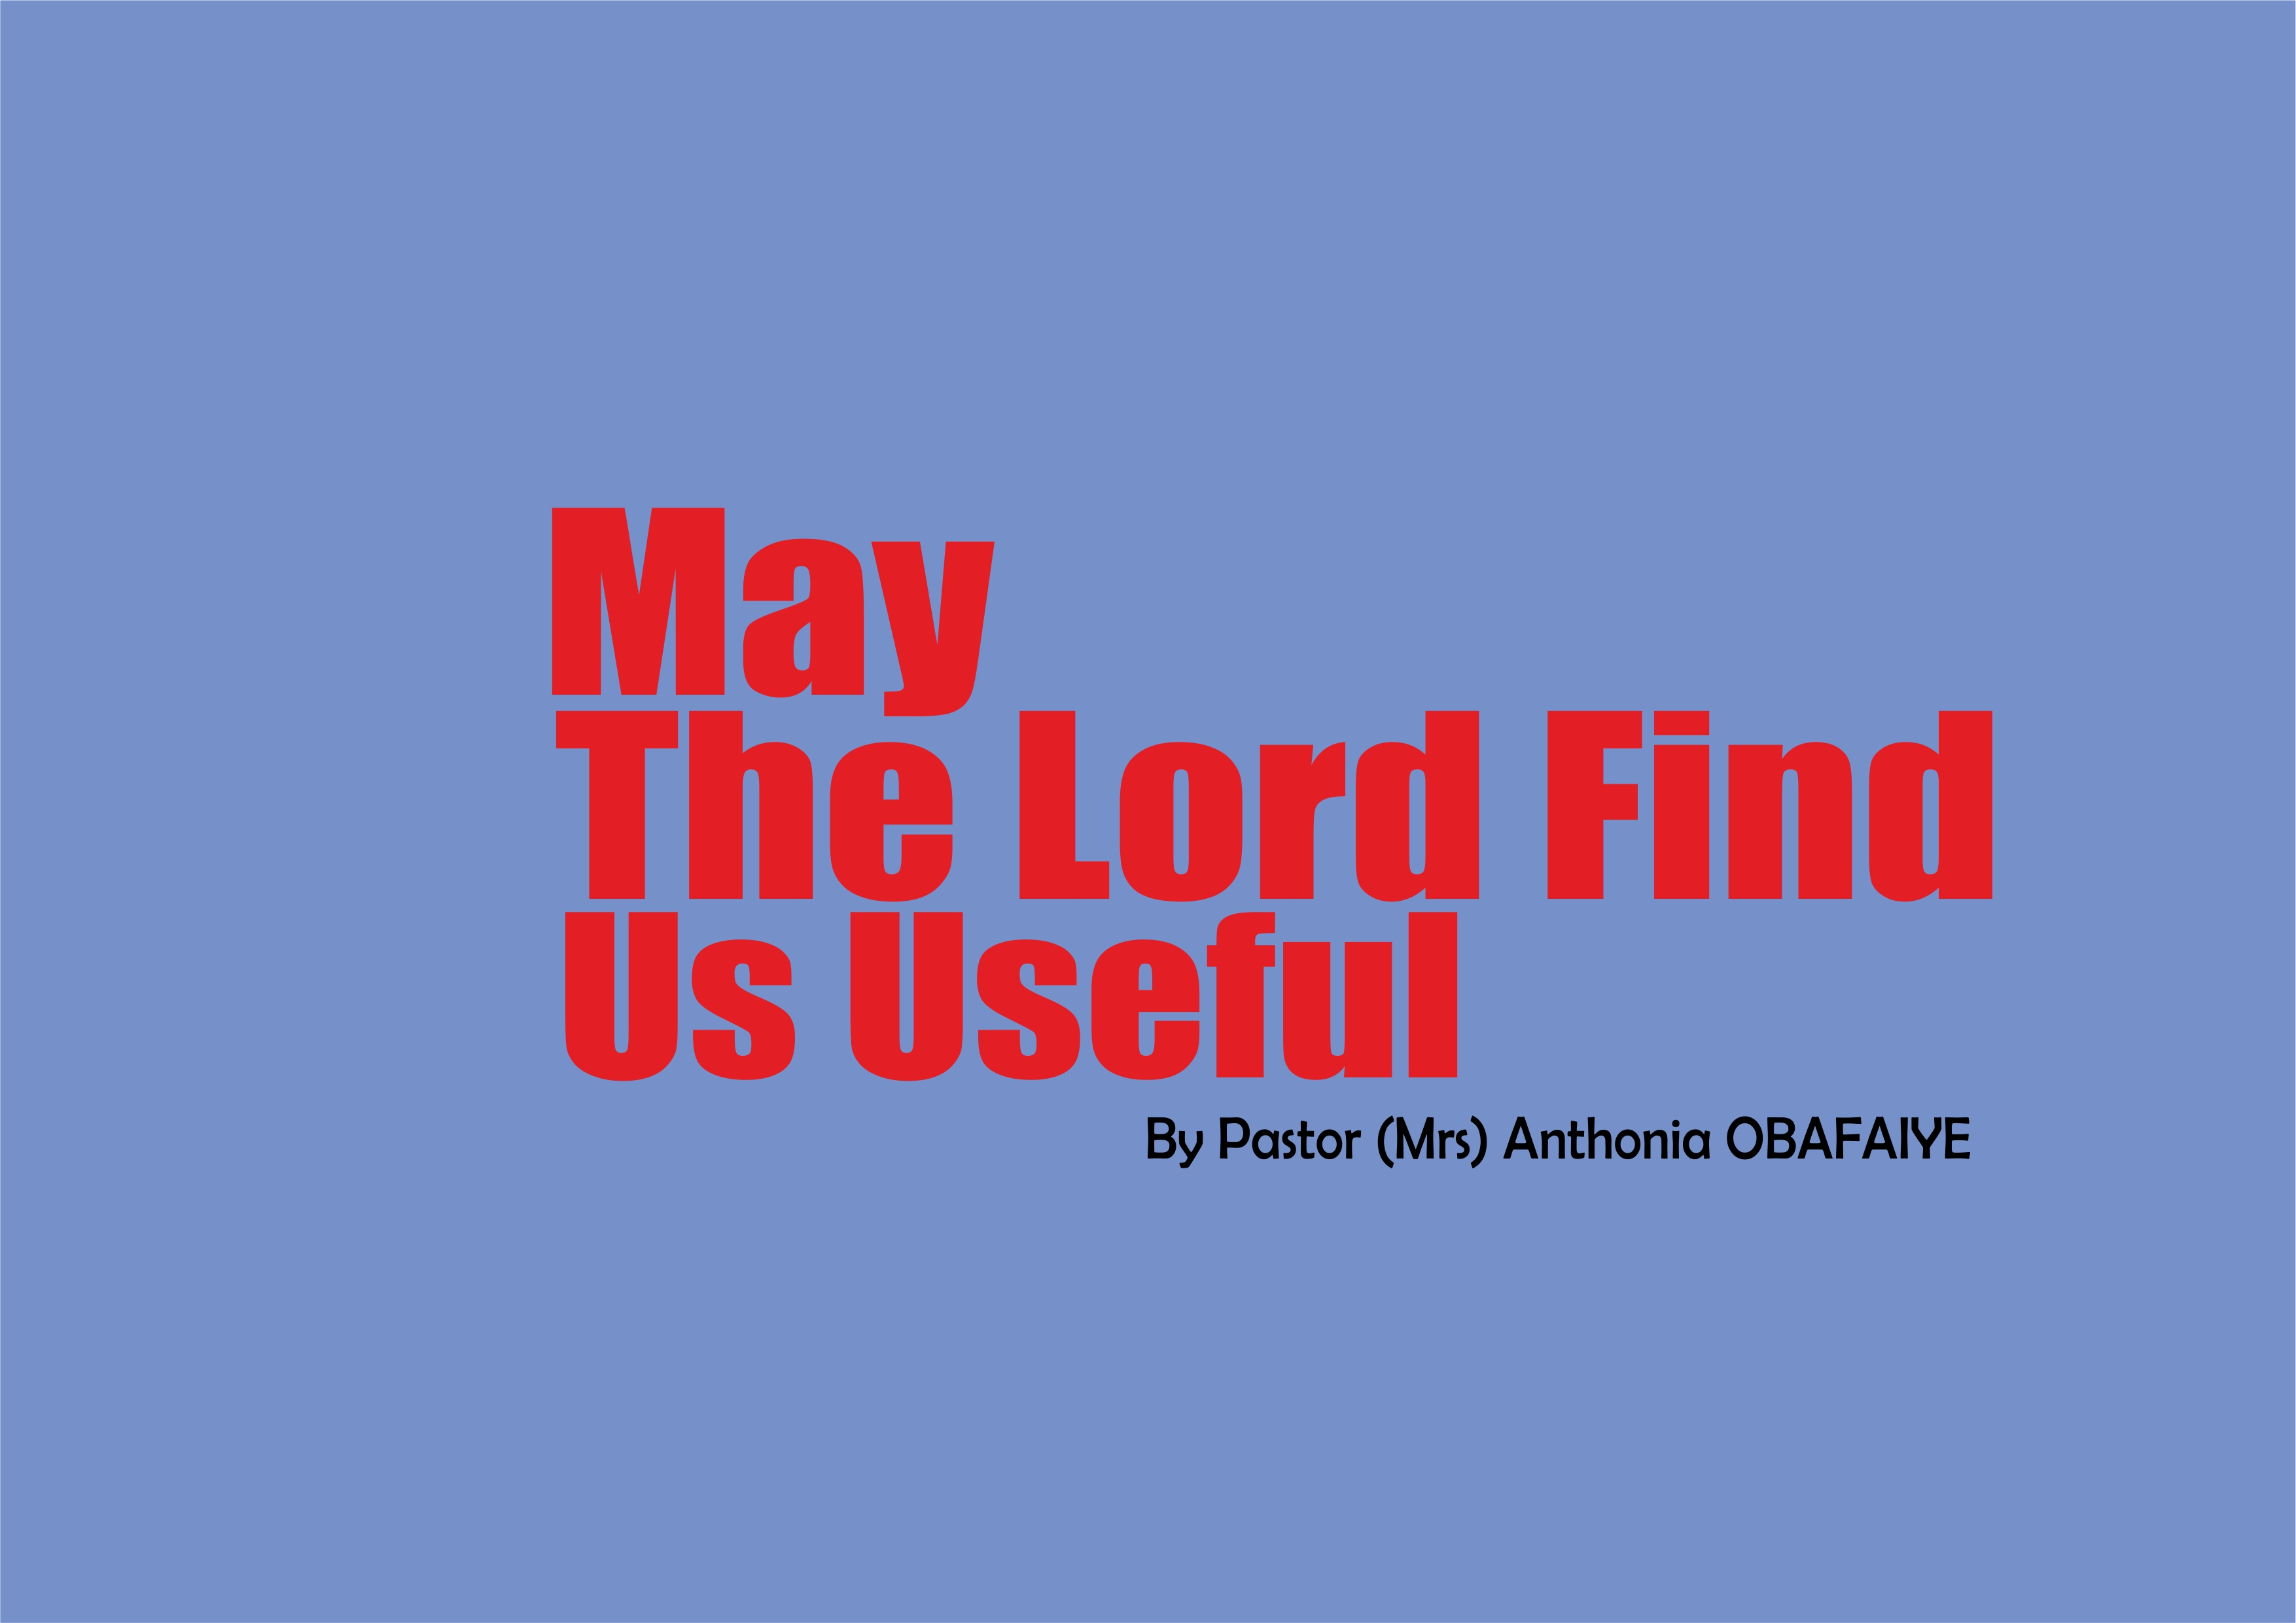 May The Lord Find Us Useful, by Pastor (Mrs) Anthonia Obafaiye